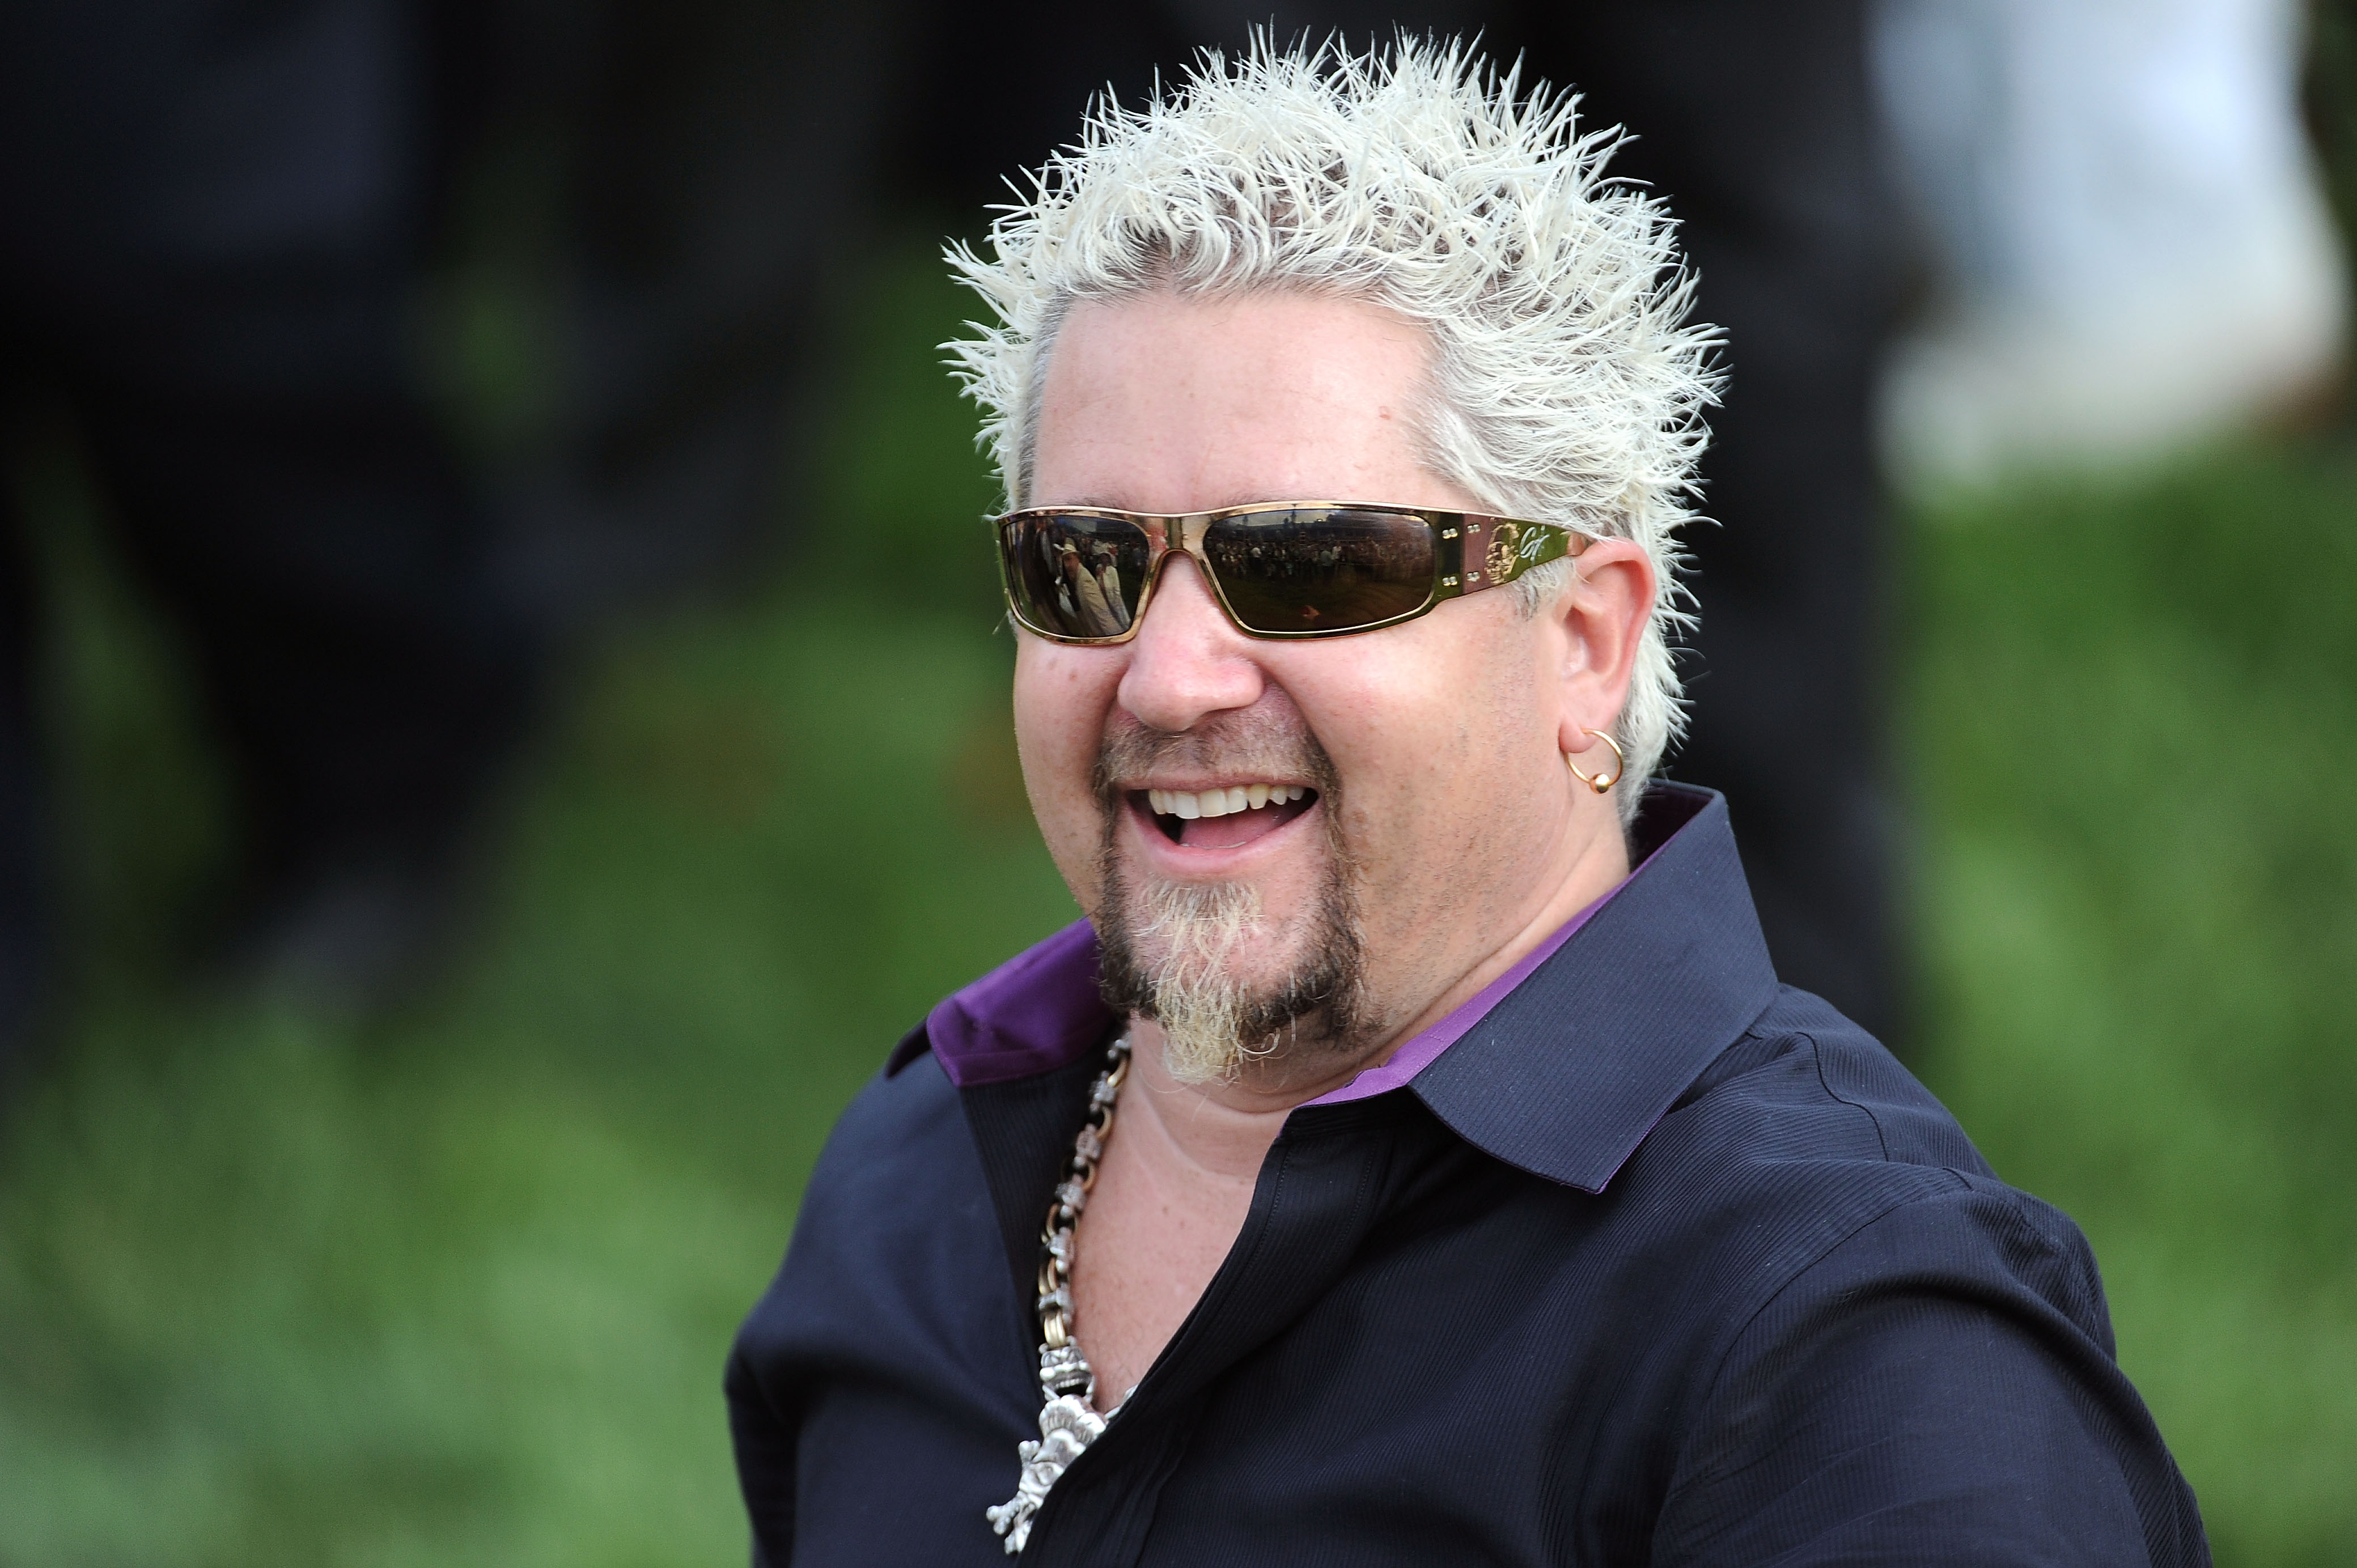 Can Guy Fieri Please Play Ursula in 'The Little Mermaid'?